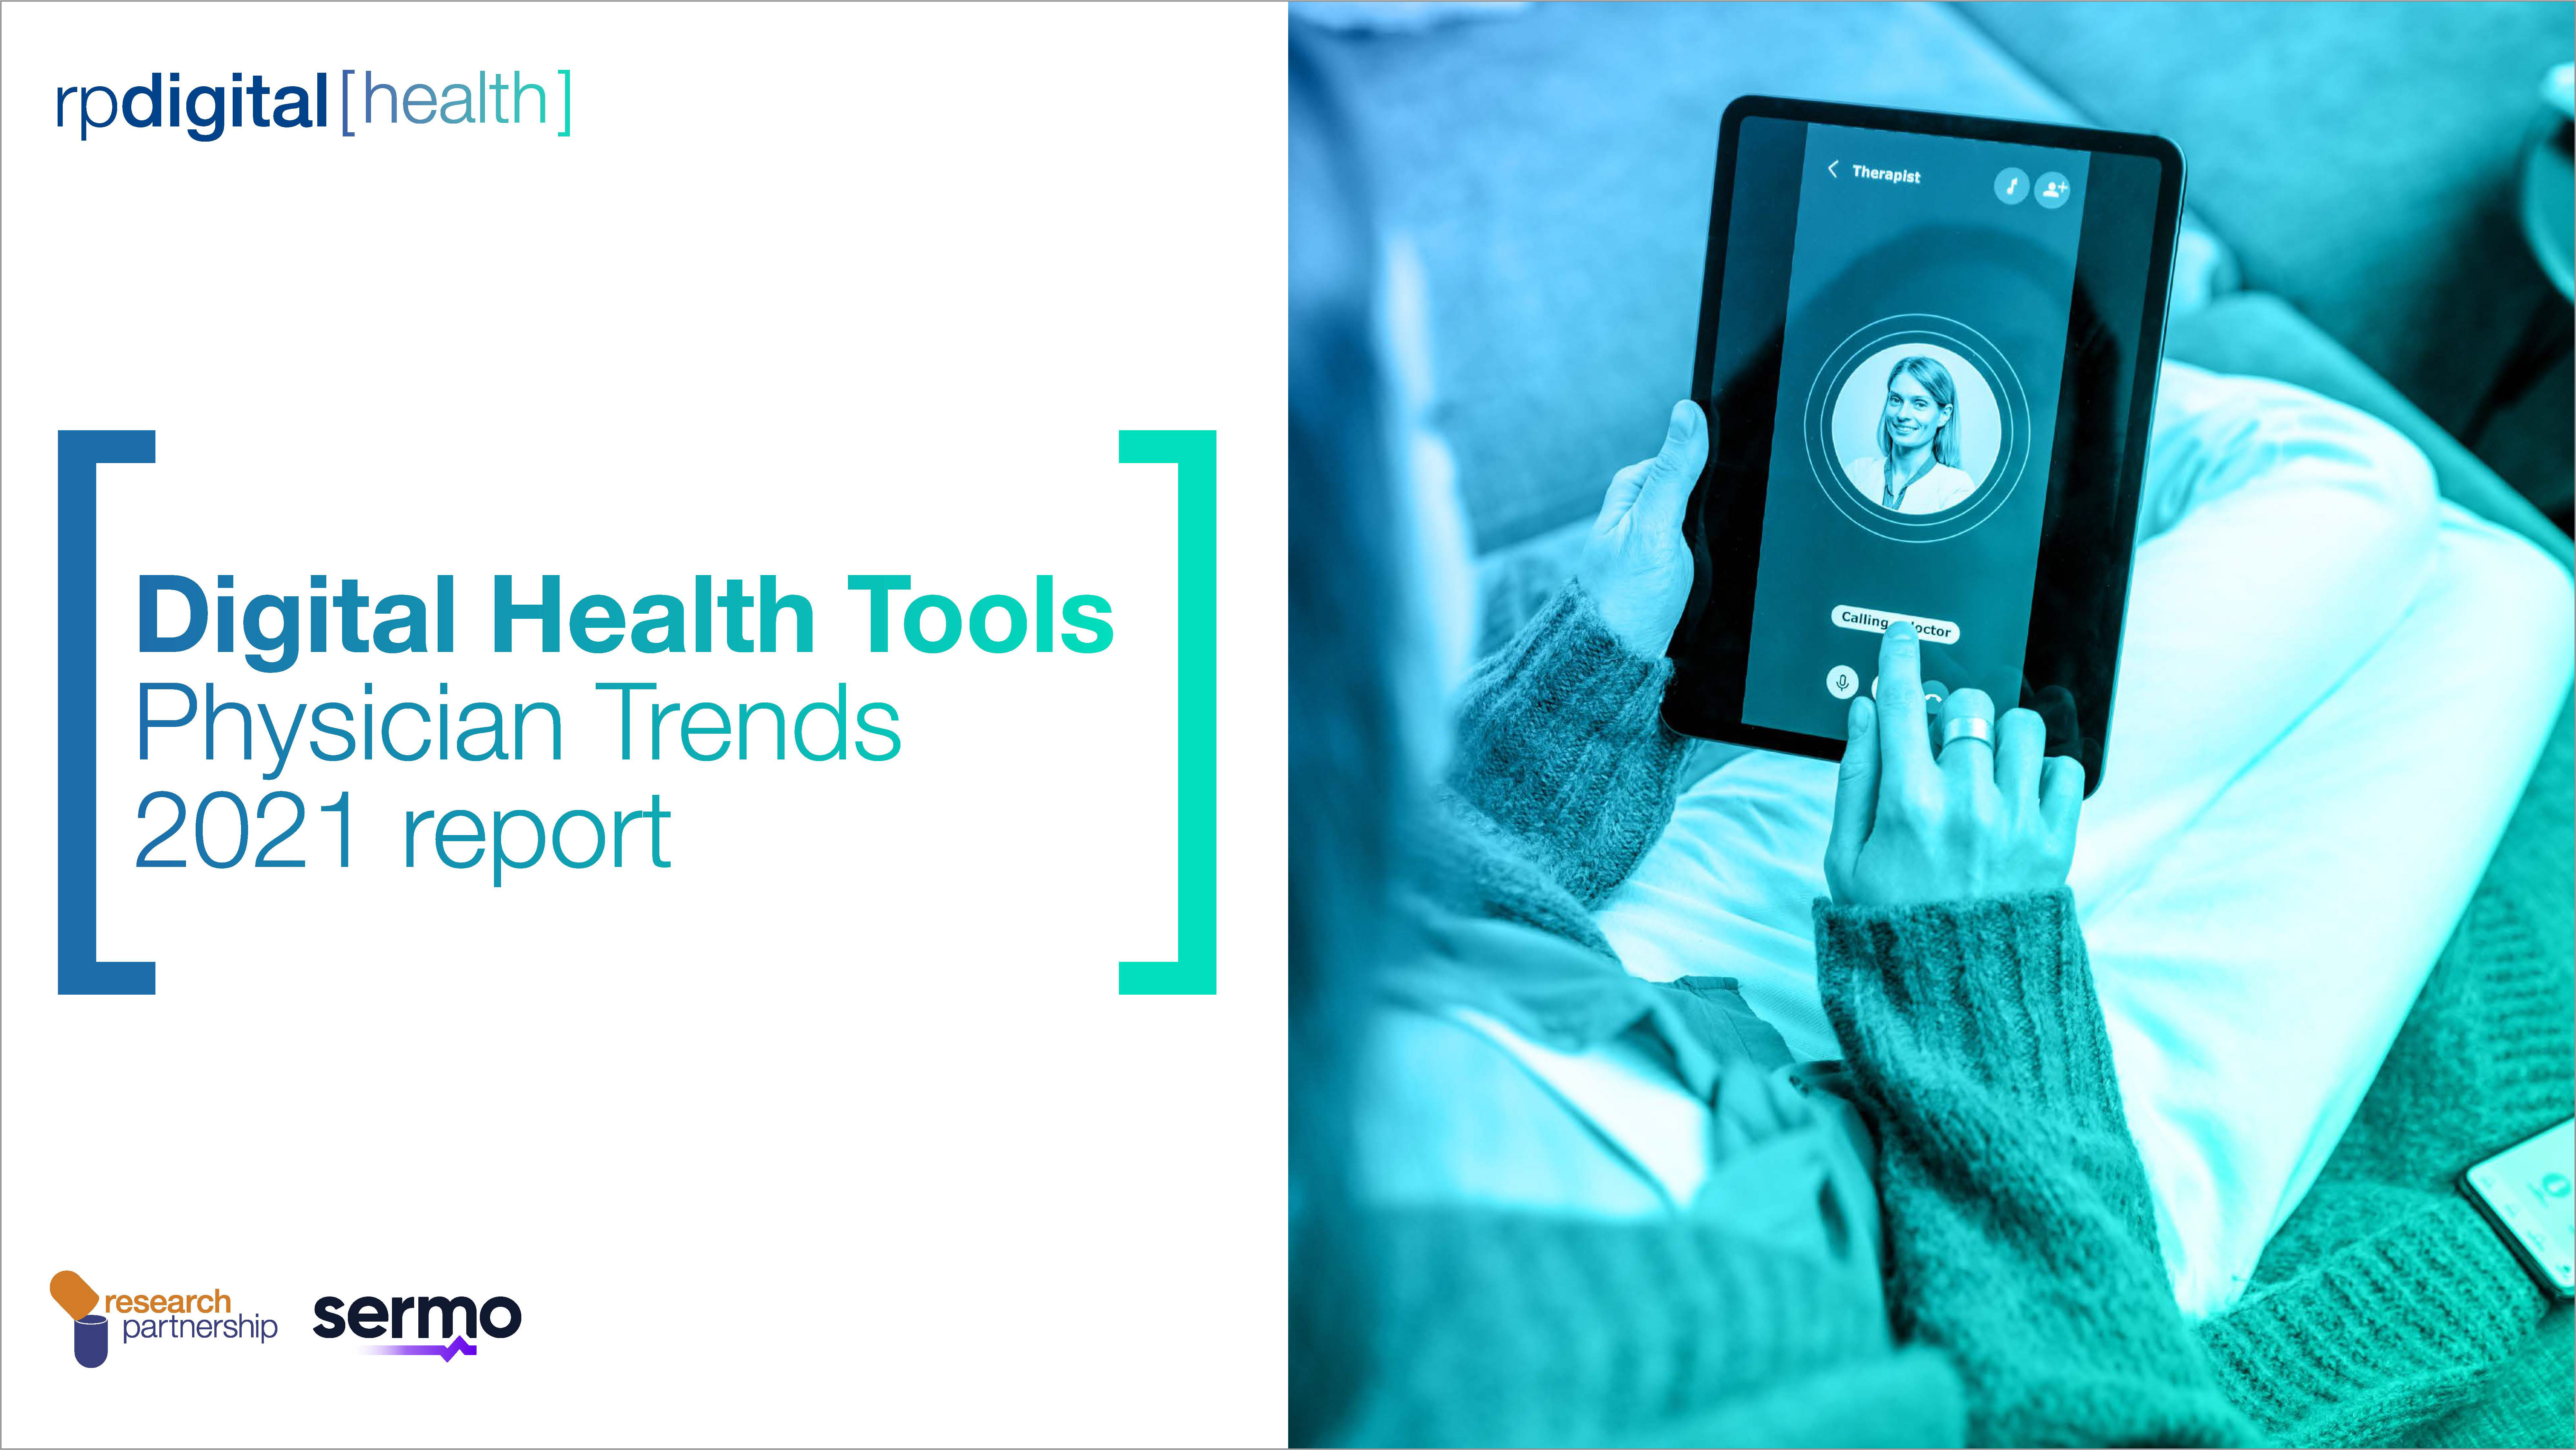 Dig health tools report image with border